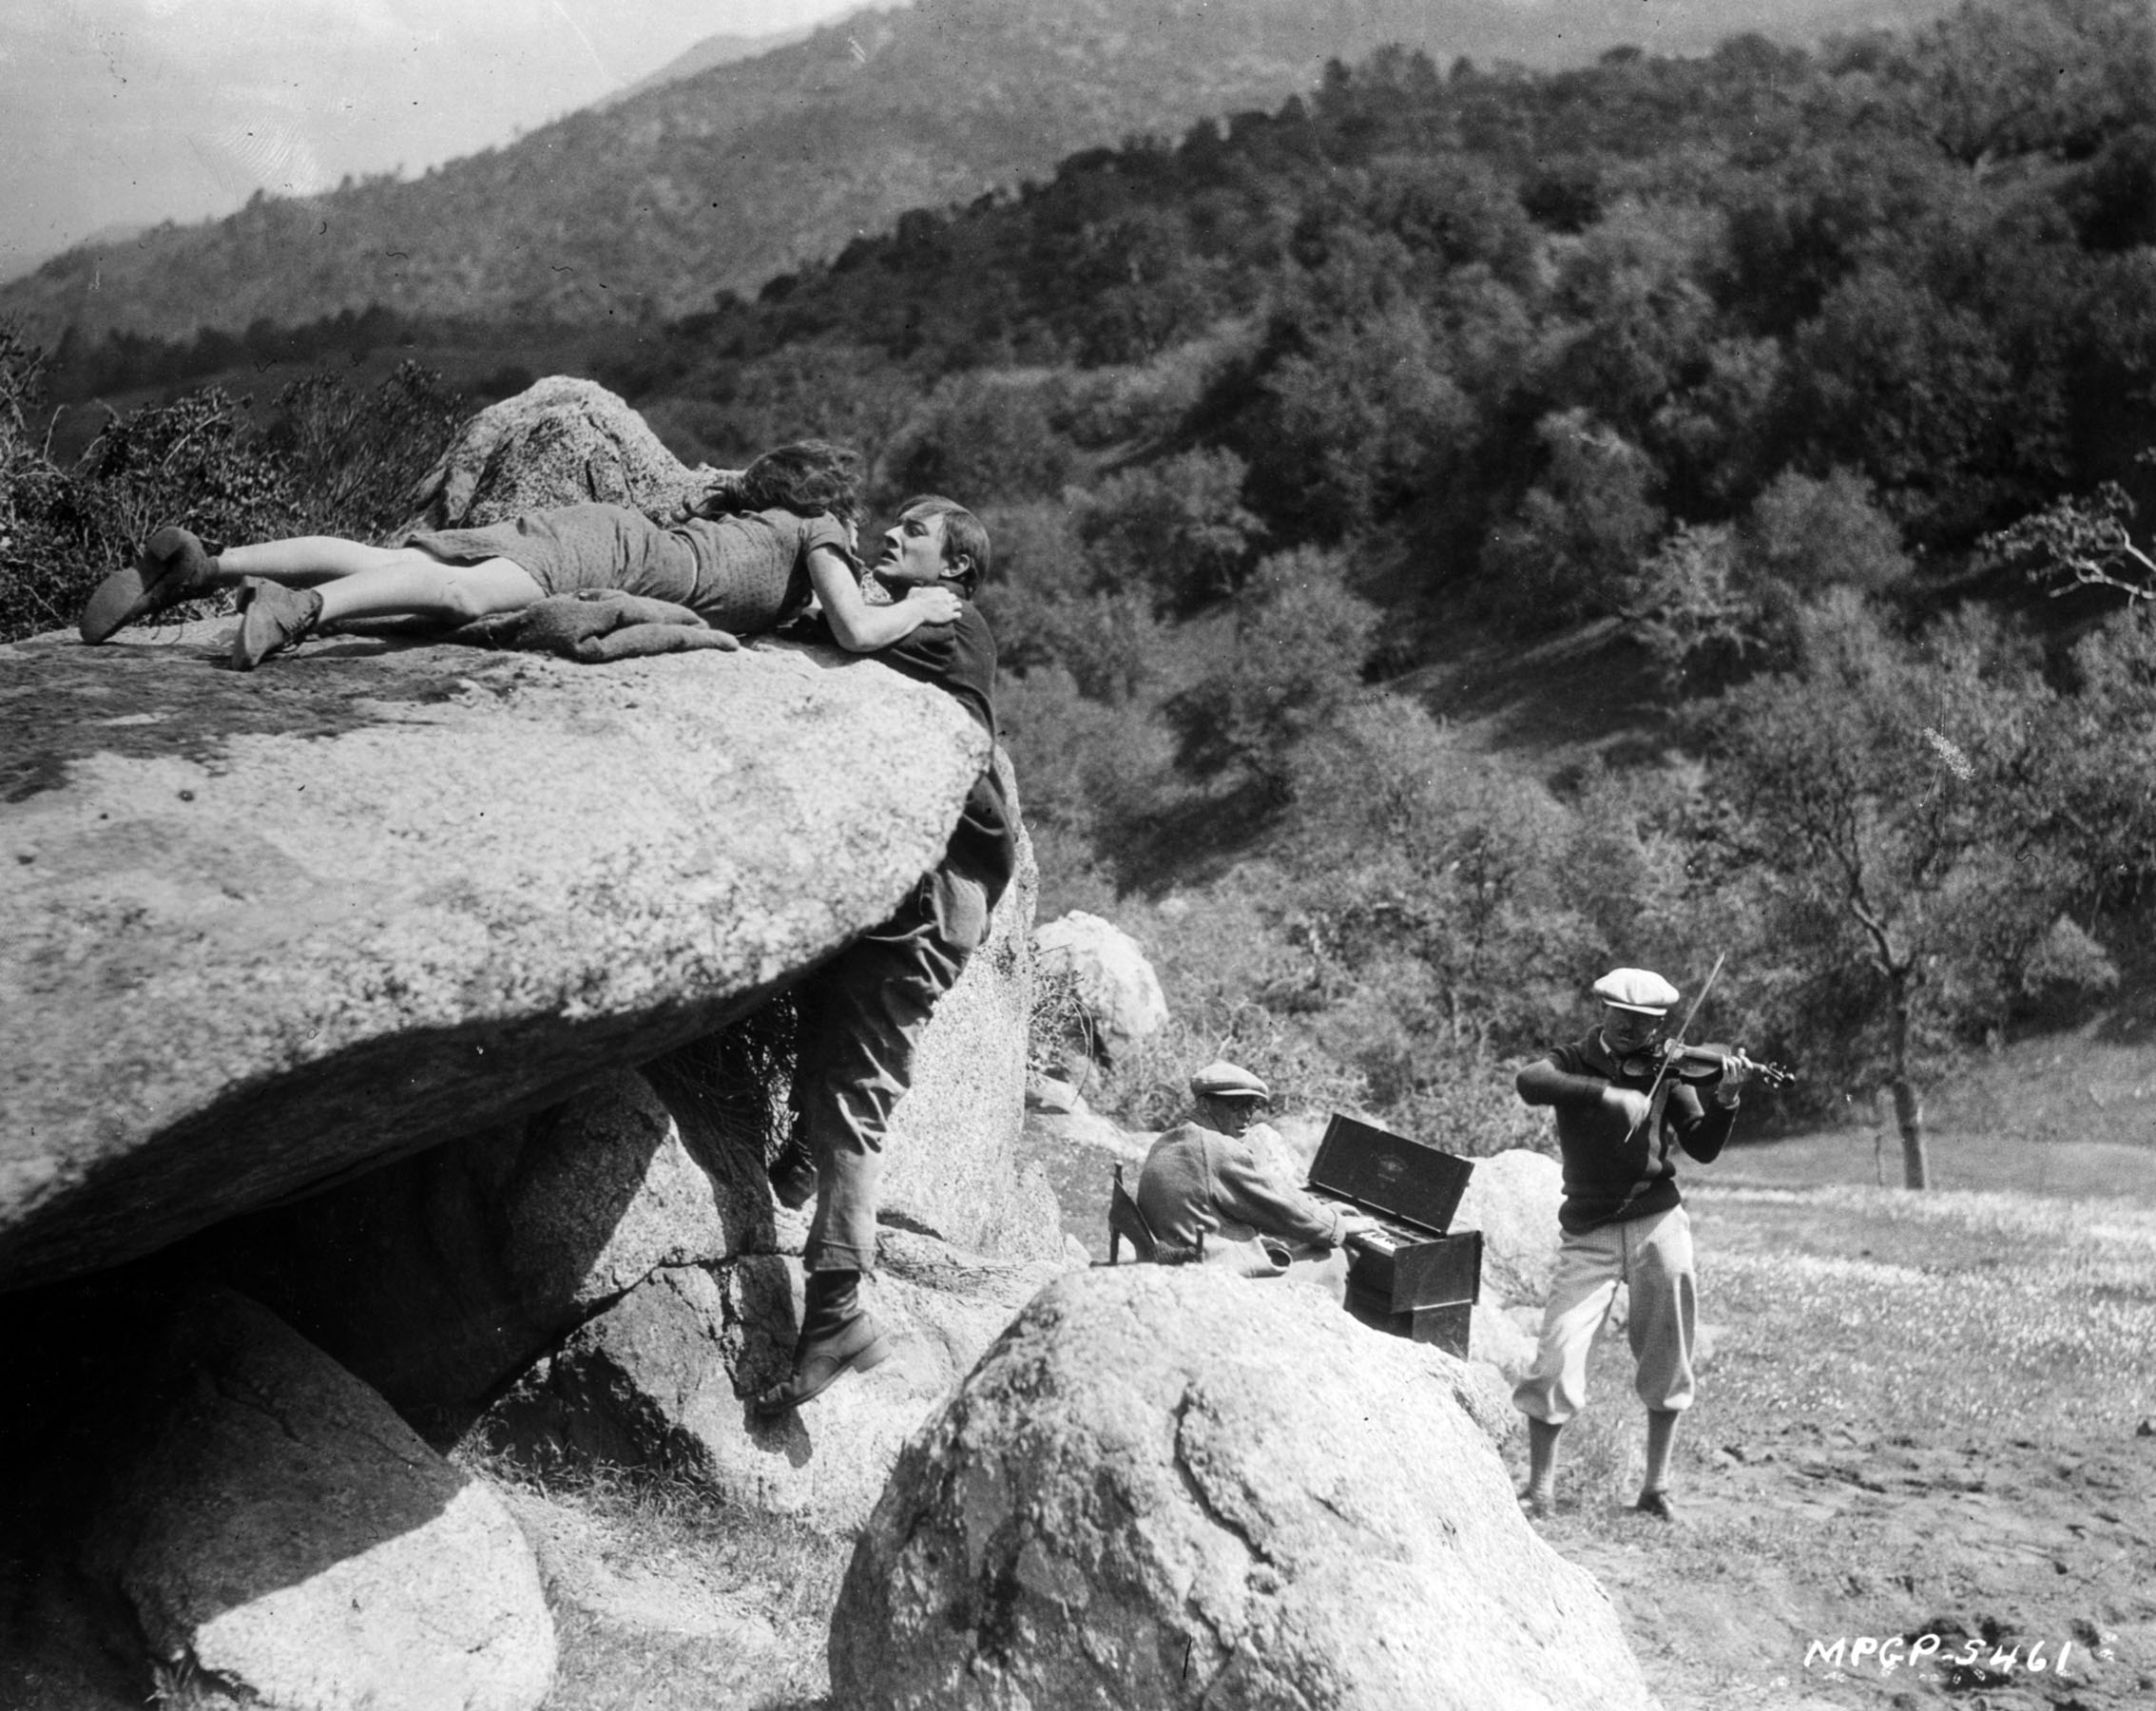 A production still for 1925's Sun Up captures the on-set musical accompaniment typical of silent productions.